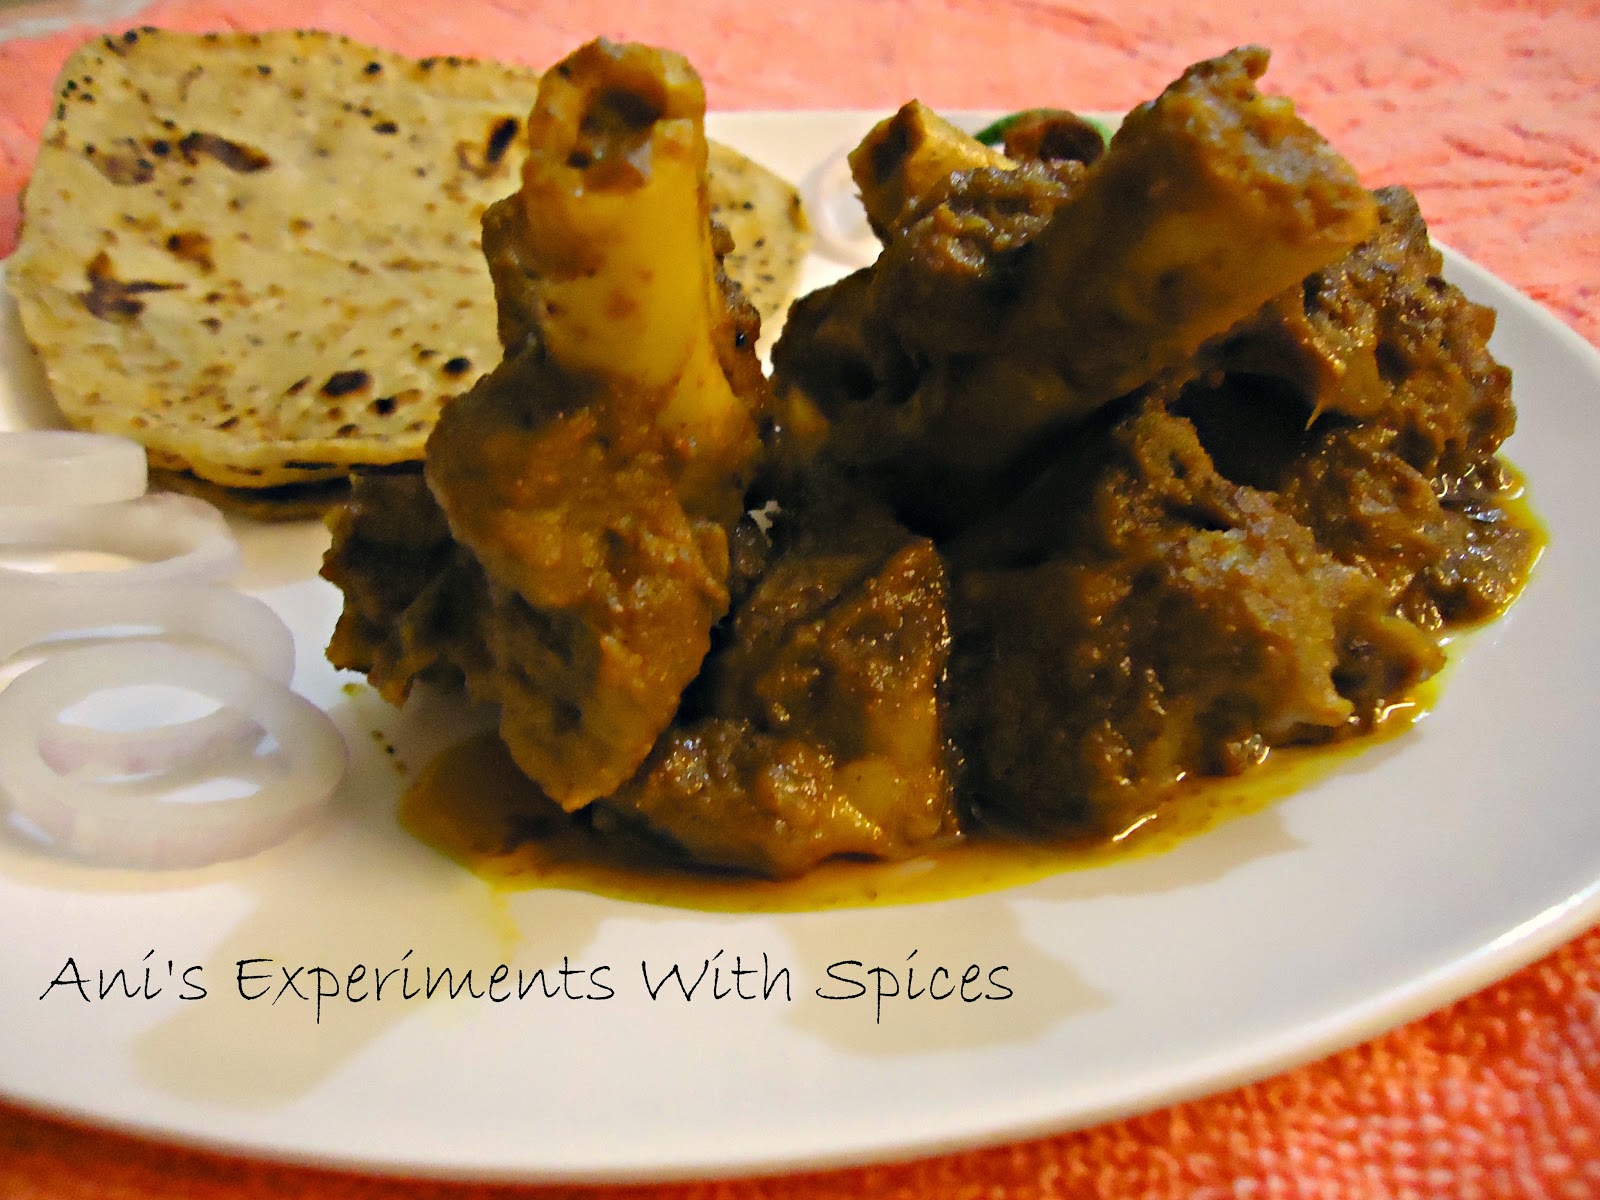 anis experiments with spices golbarir kosha mangsho